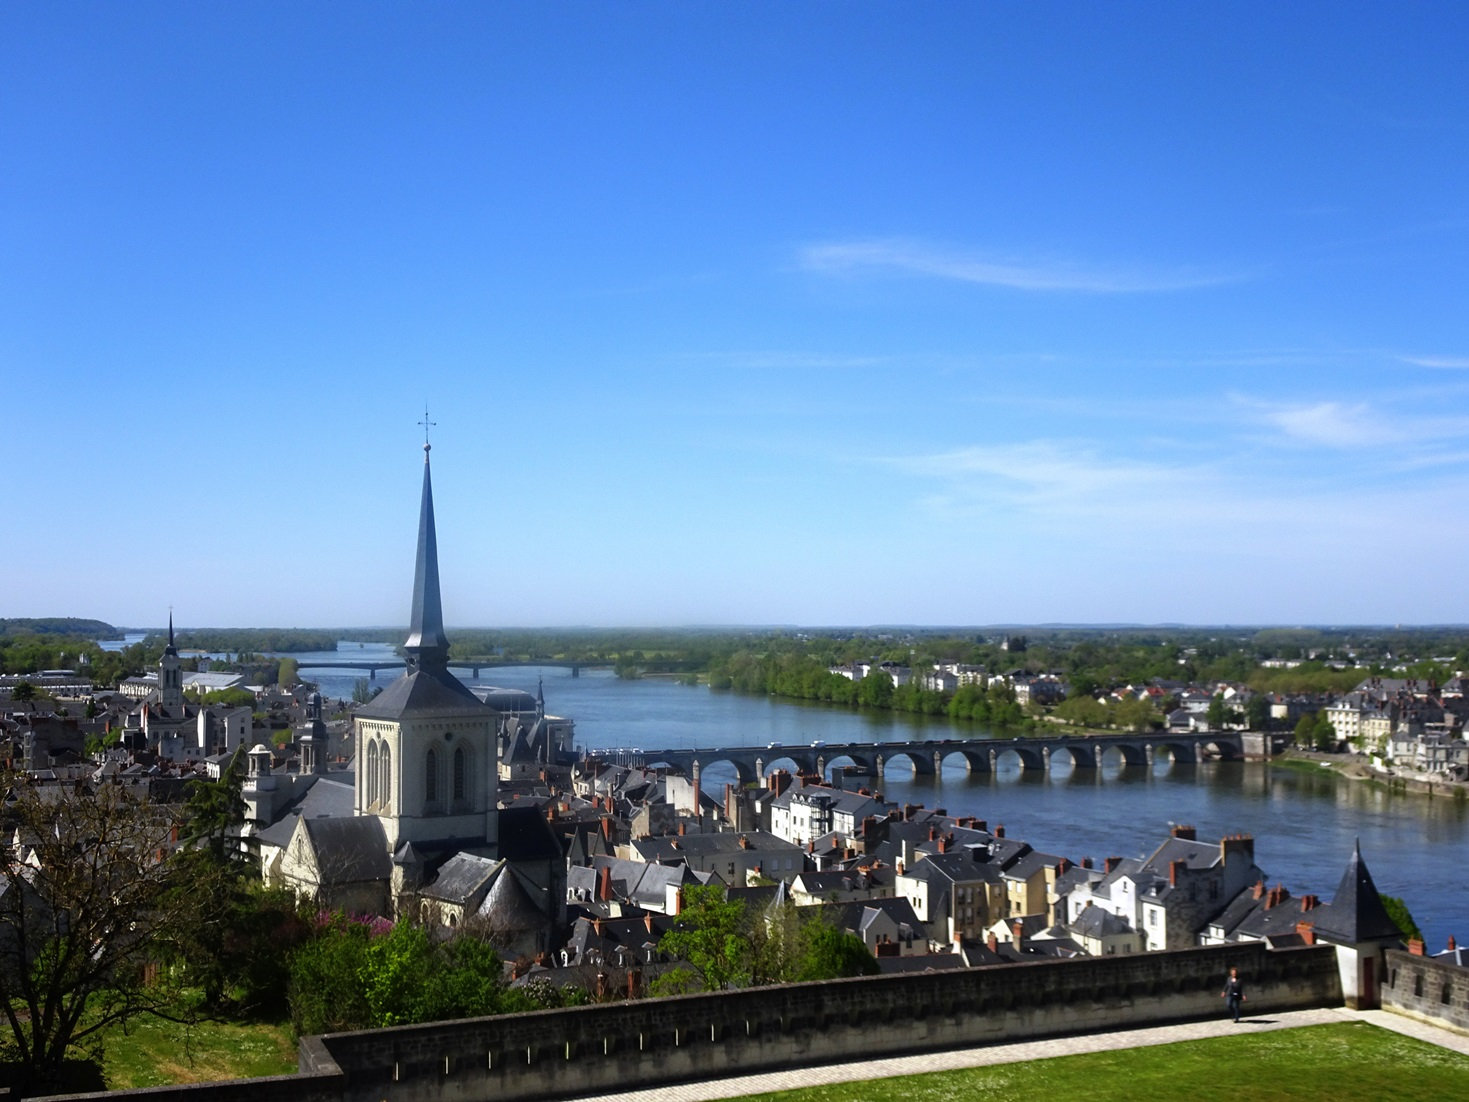 The beautiful view of Saumur taken from the Castle.